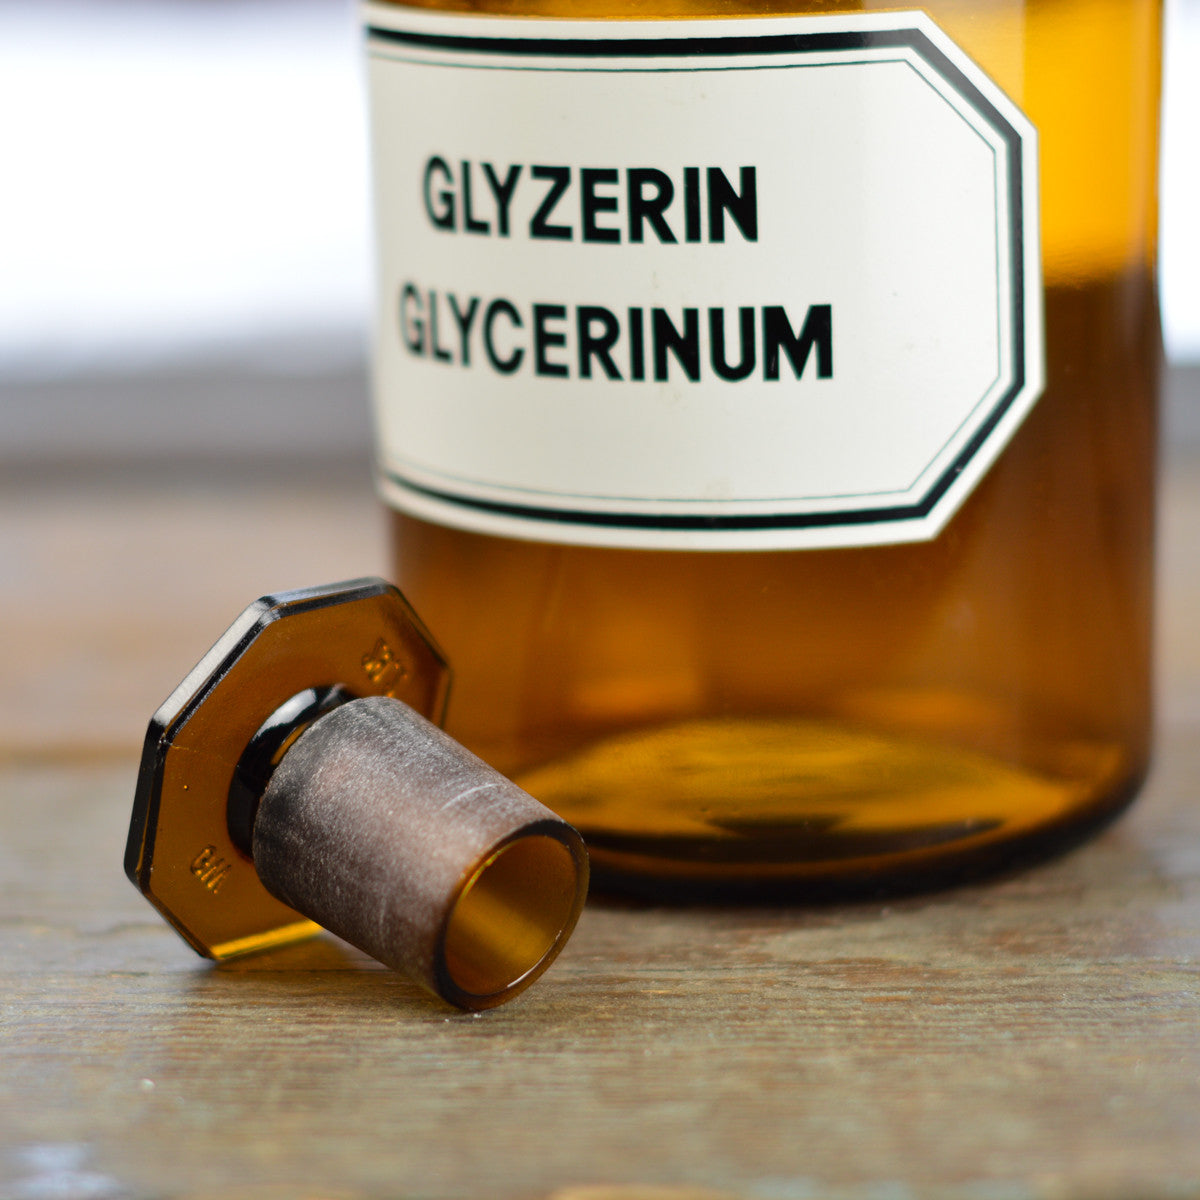 Vintage 1930's - 1940's Apothecary Jar with Latin Label GLYZERIN GLYCERINUM and Hexagon Stopper